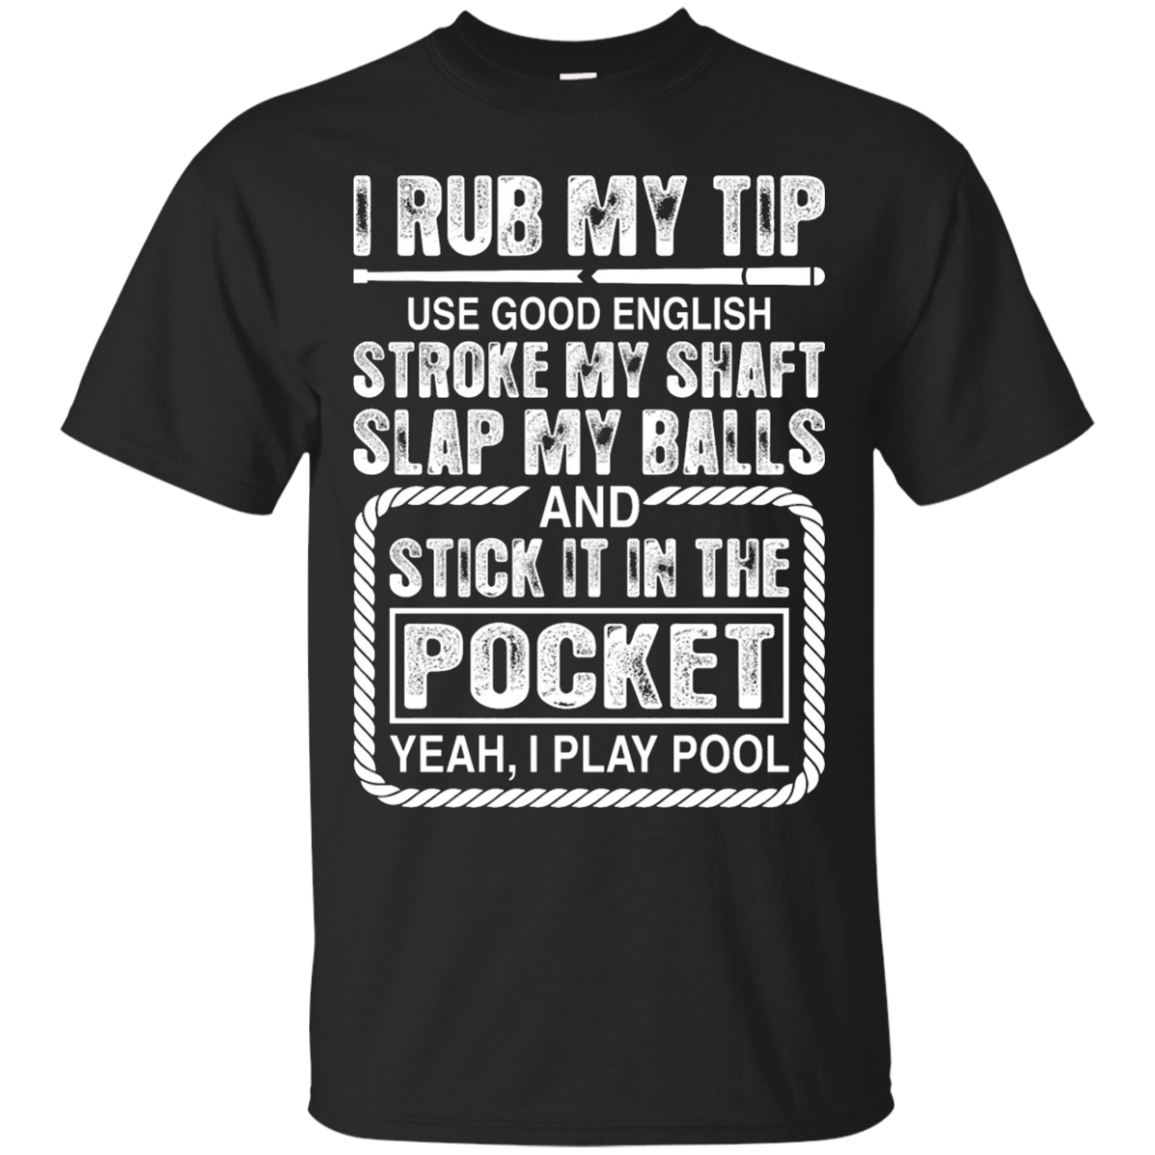 I Play Pool T shirt